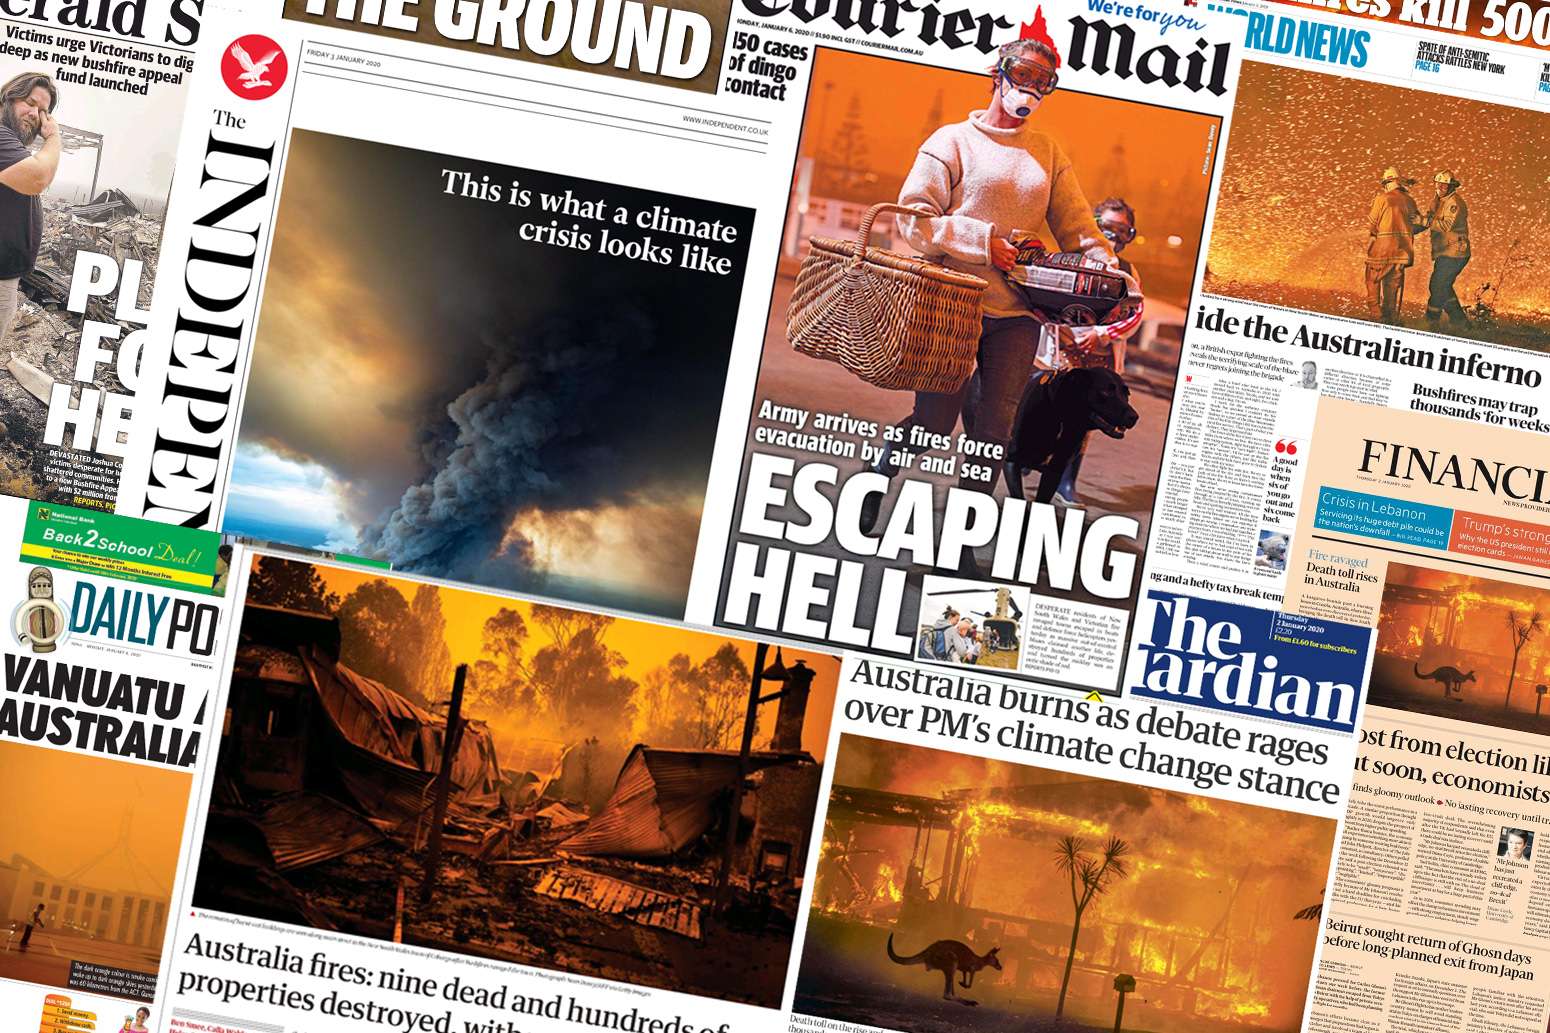 australia wildfires carbon brief media roundup climate change